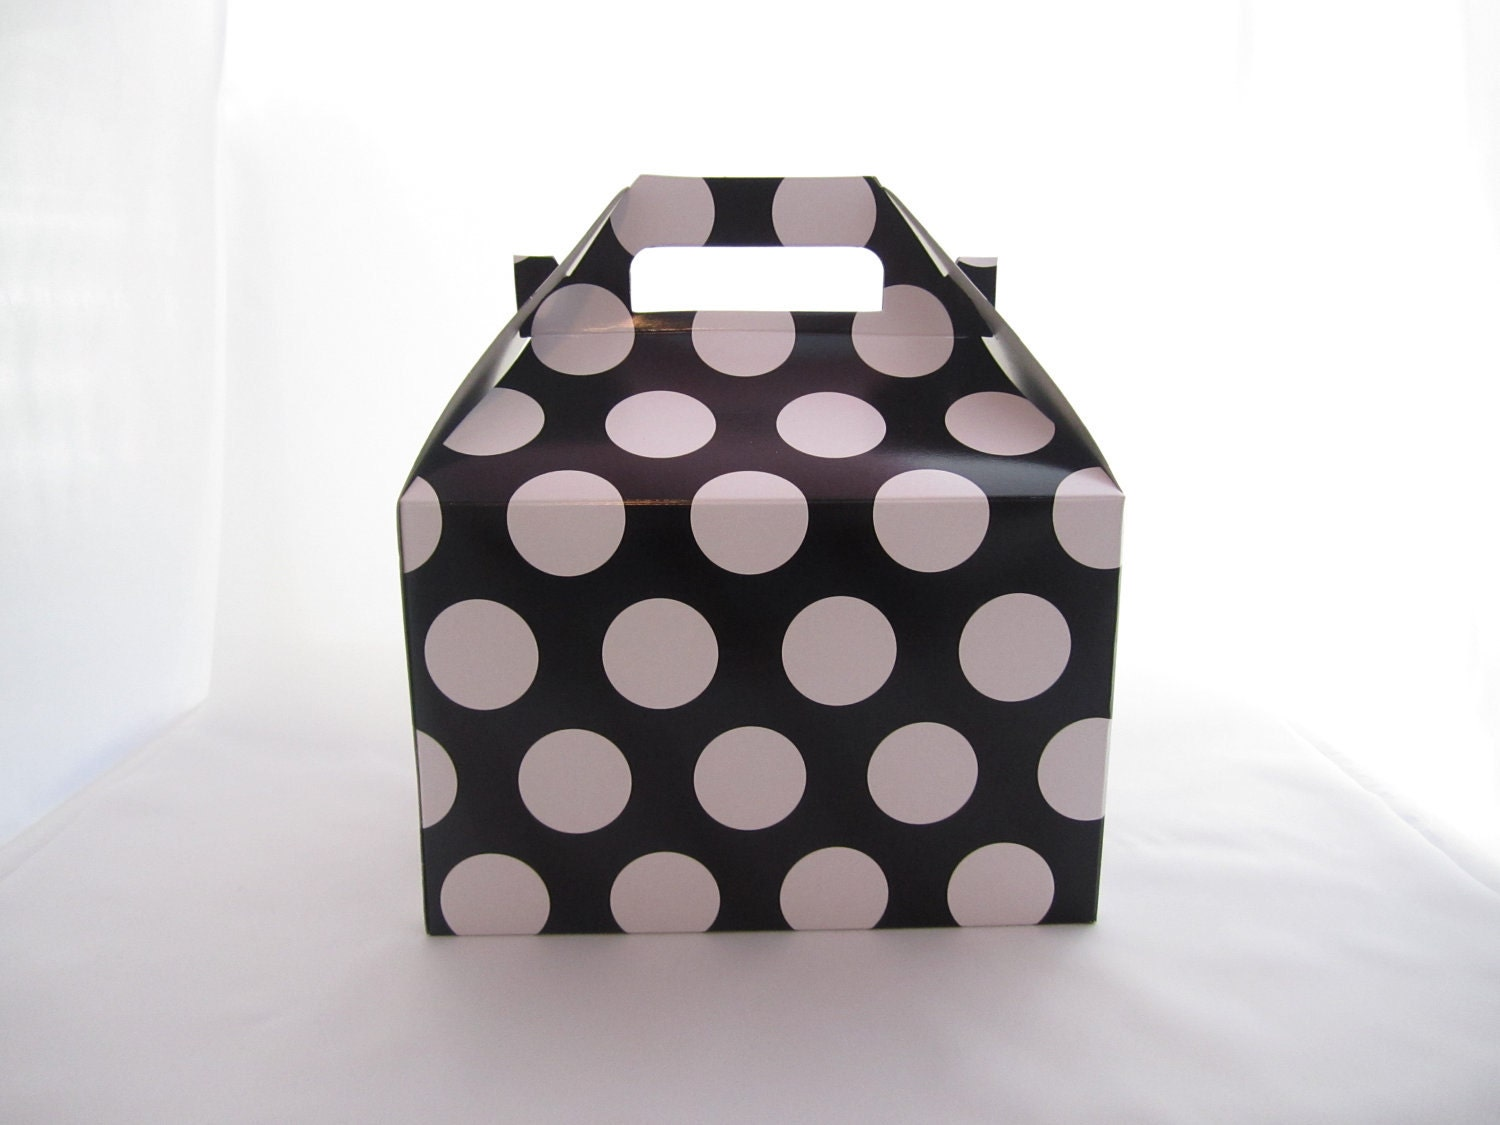 Set of 25 Large Black Polka Dot- Pink Polka Dot - or Zebra Print  Gable Top Boxes - justalittlefavor